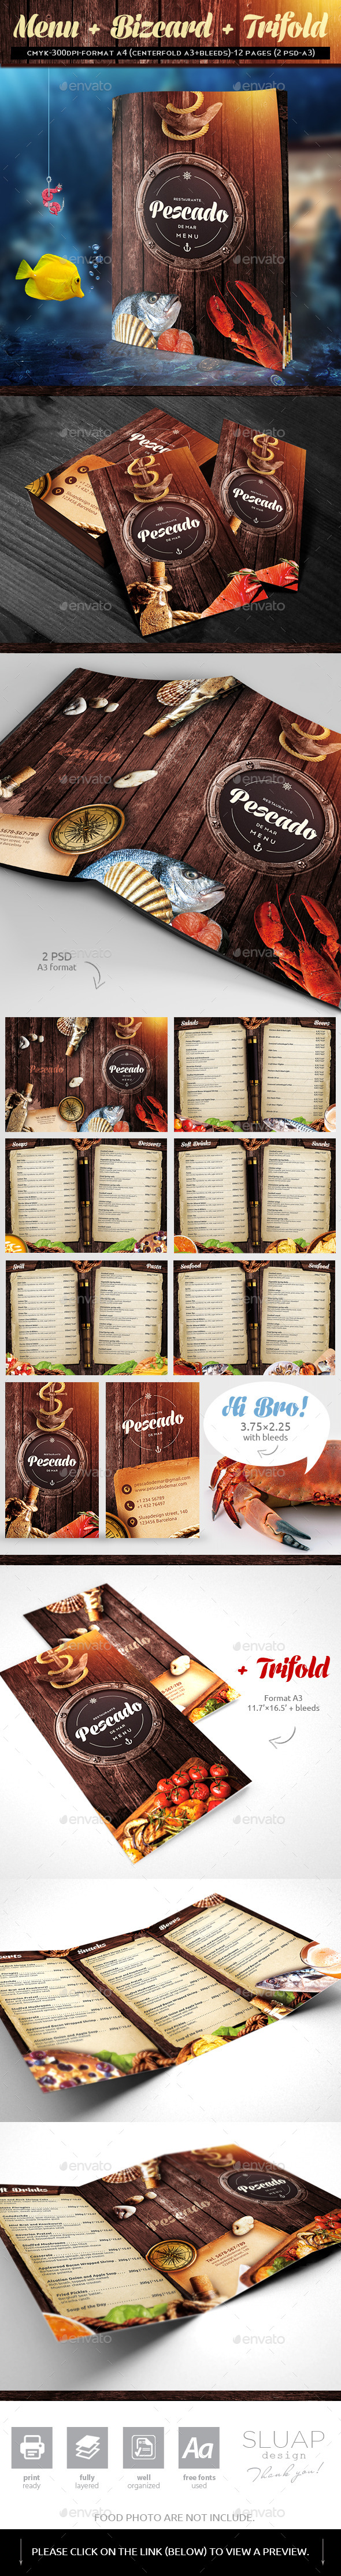 GraphicRiver Menu & bizcard 11013269